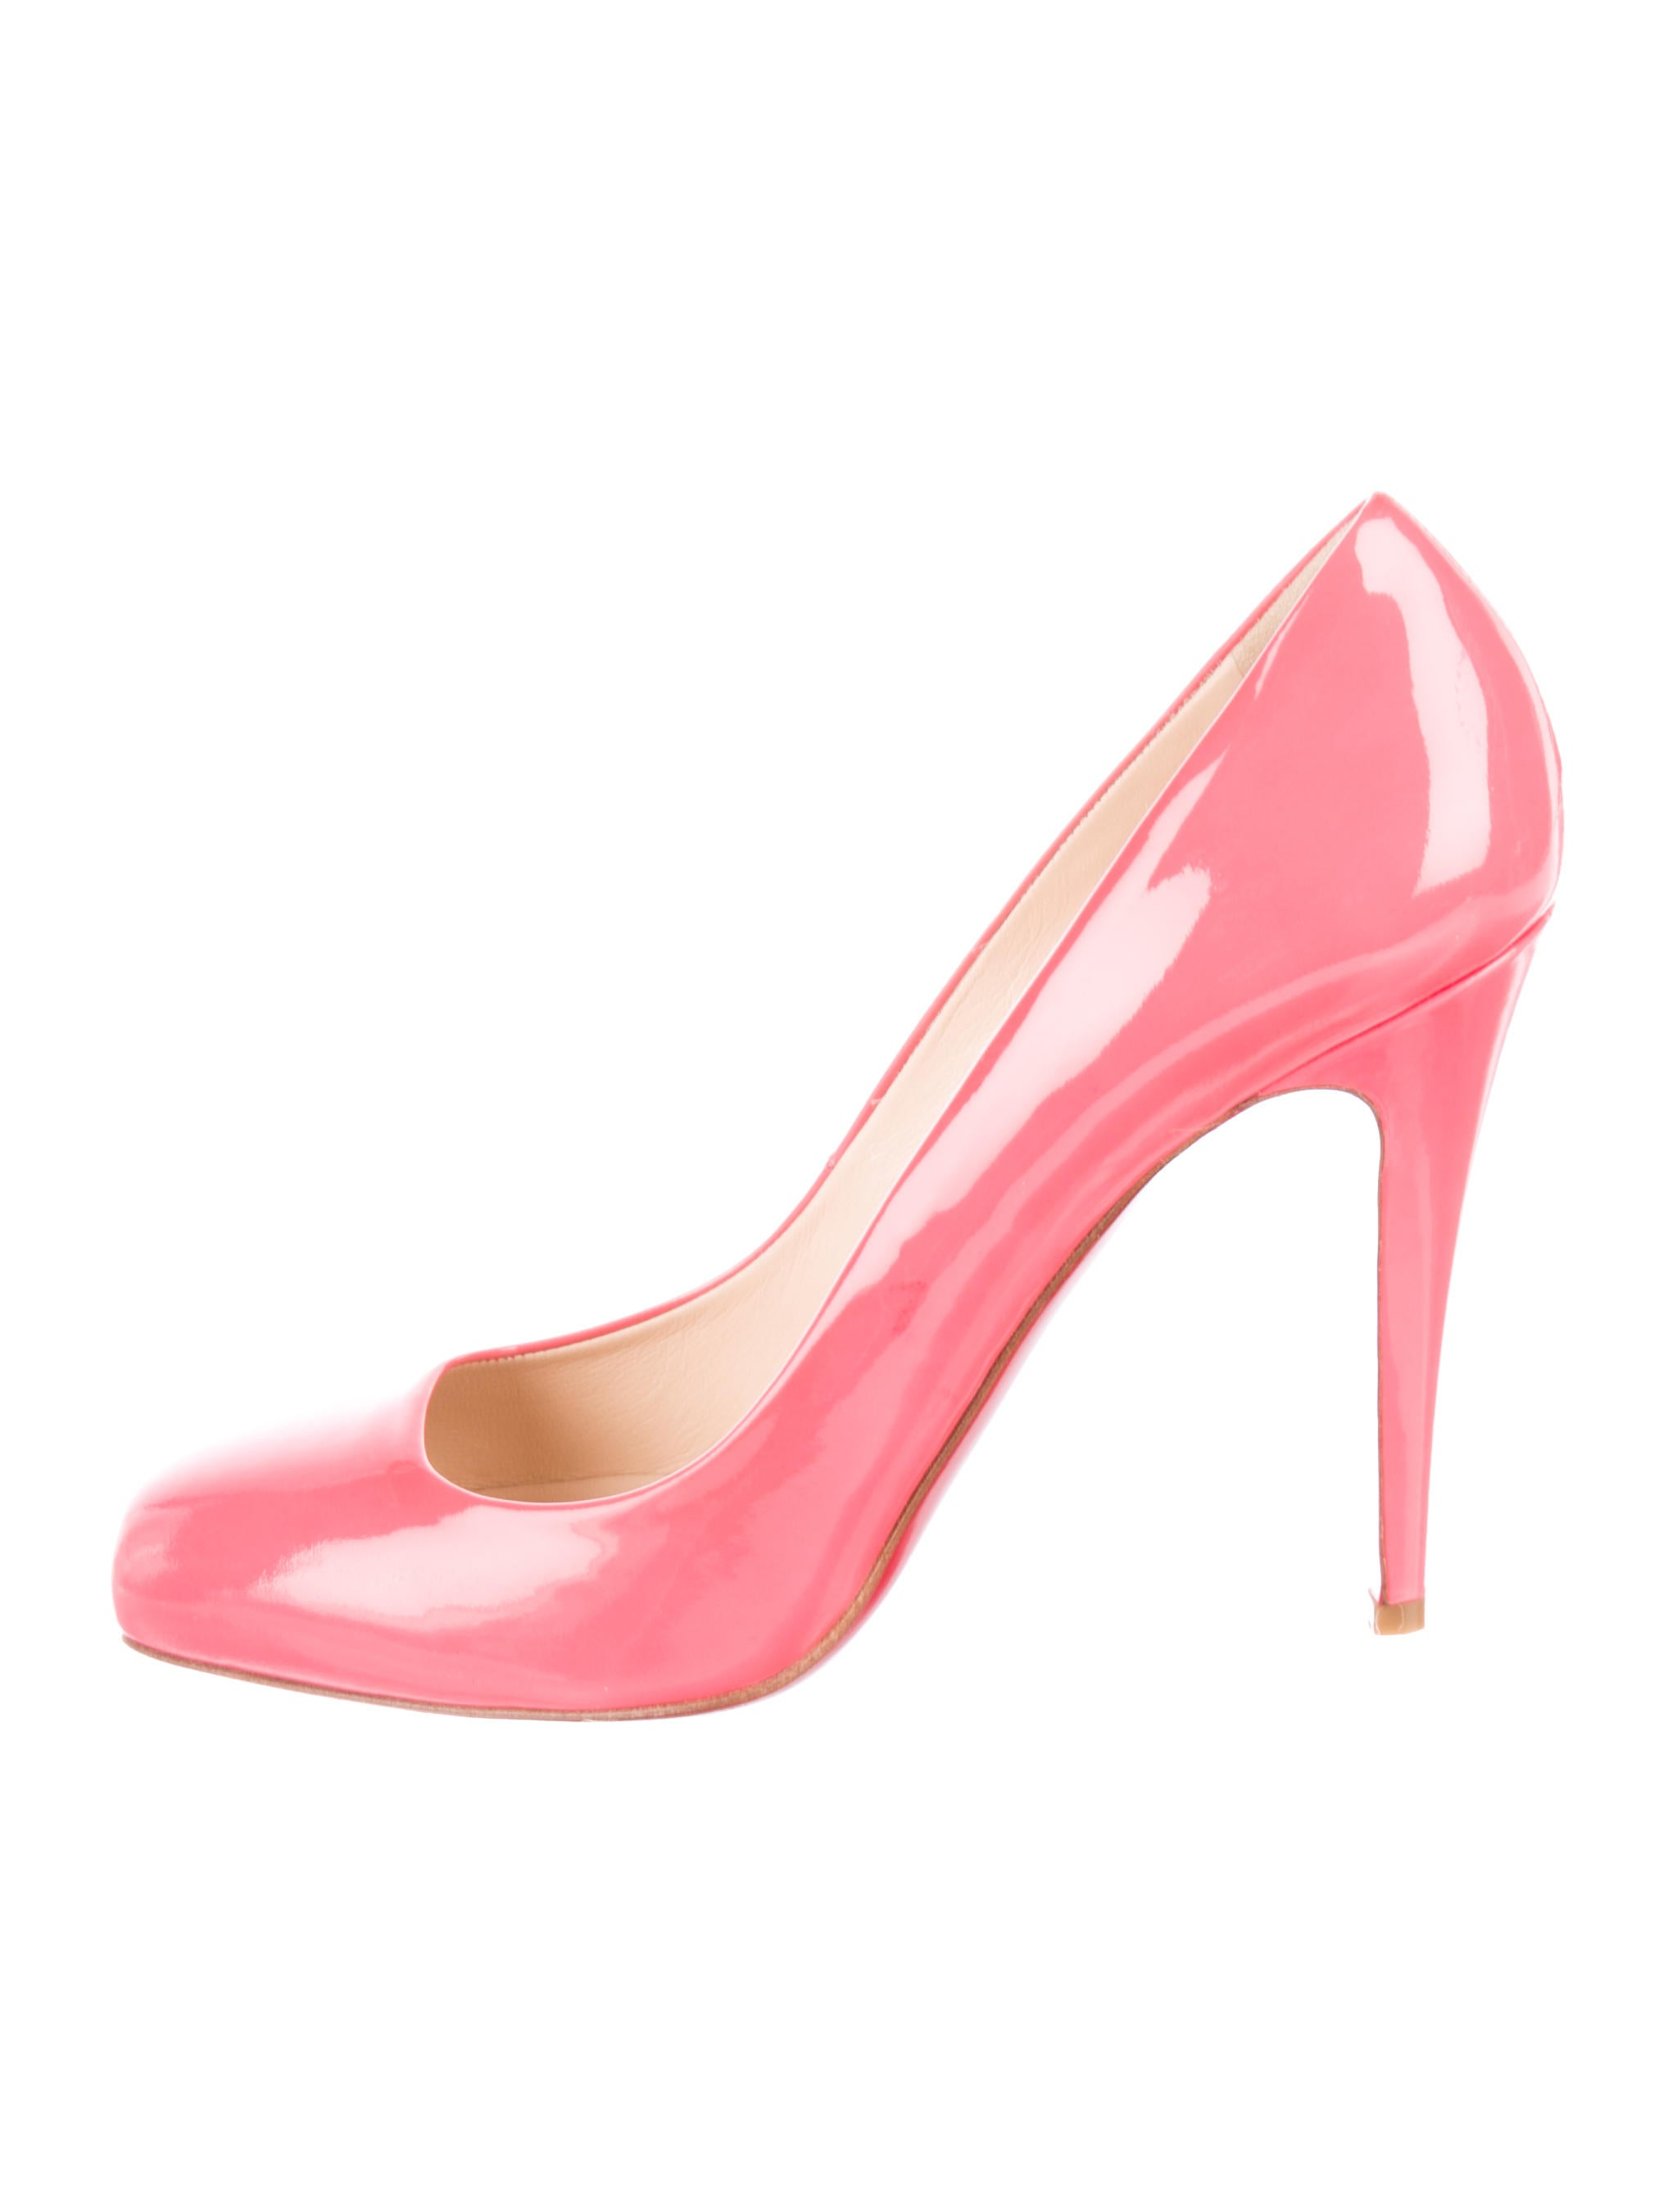 576ee4e8a25 Christian Louboutin Square-Toe Patent Leather Pumps - Shoes ...